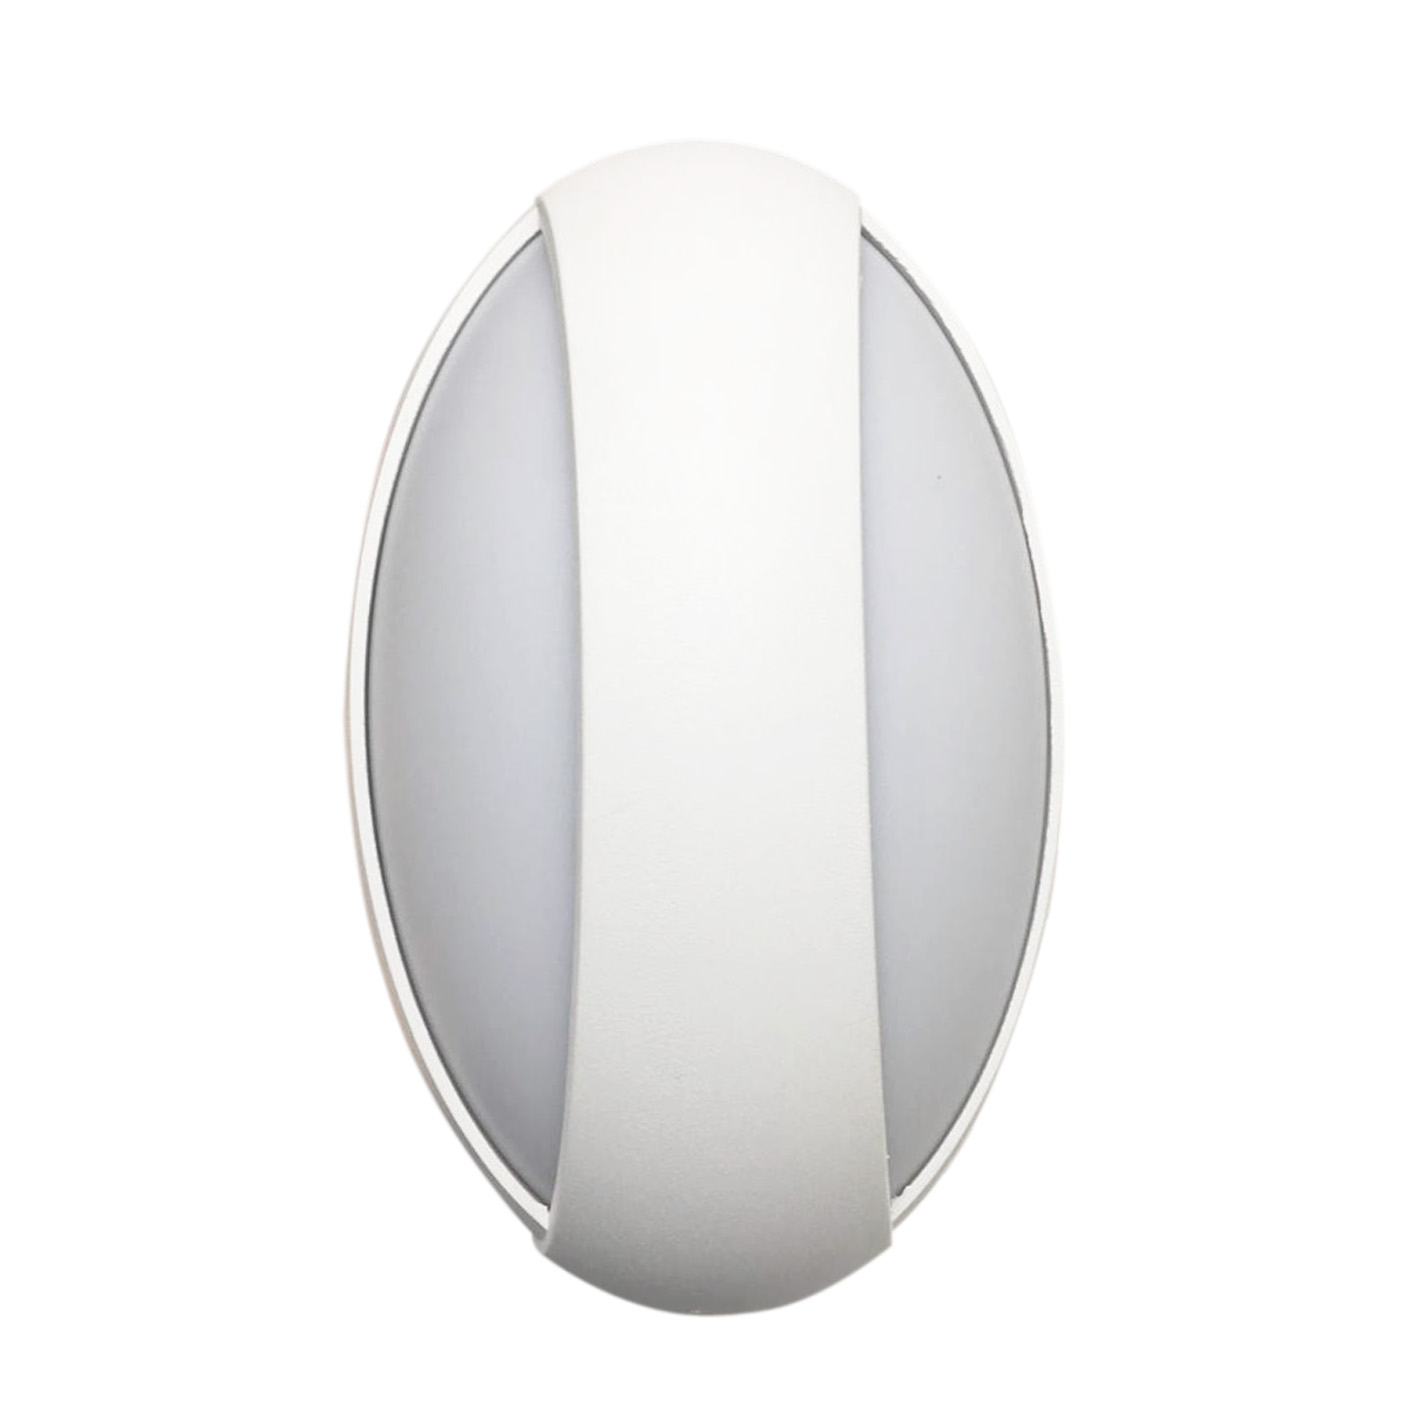 Applique Exterieur Ovale Applique Led Murale 12w Ovale Blanc